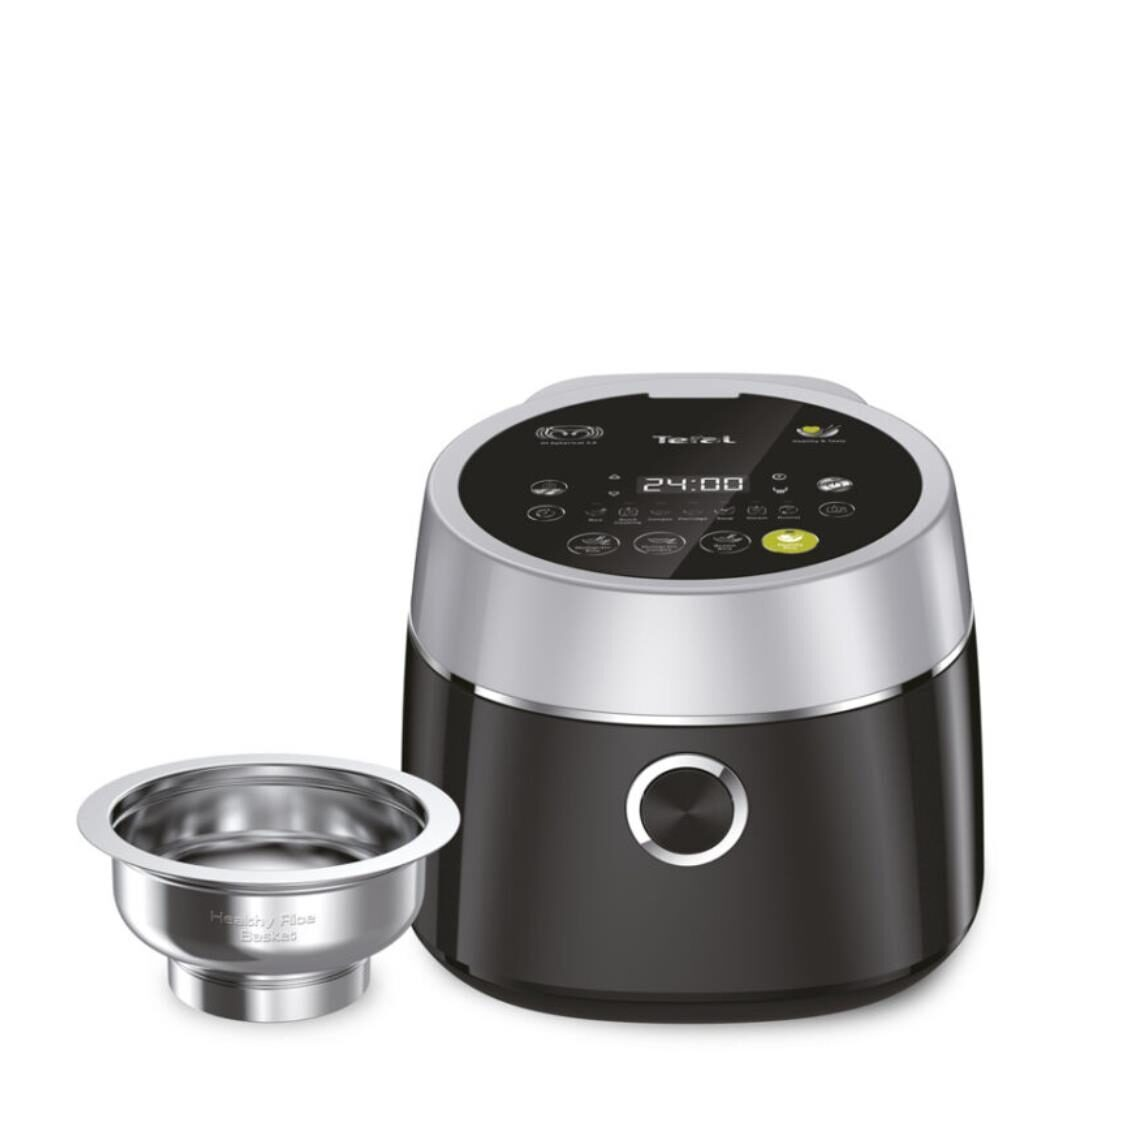 Tefal Rice Cooker Induction Healthy and Tasty 1L RK860865